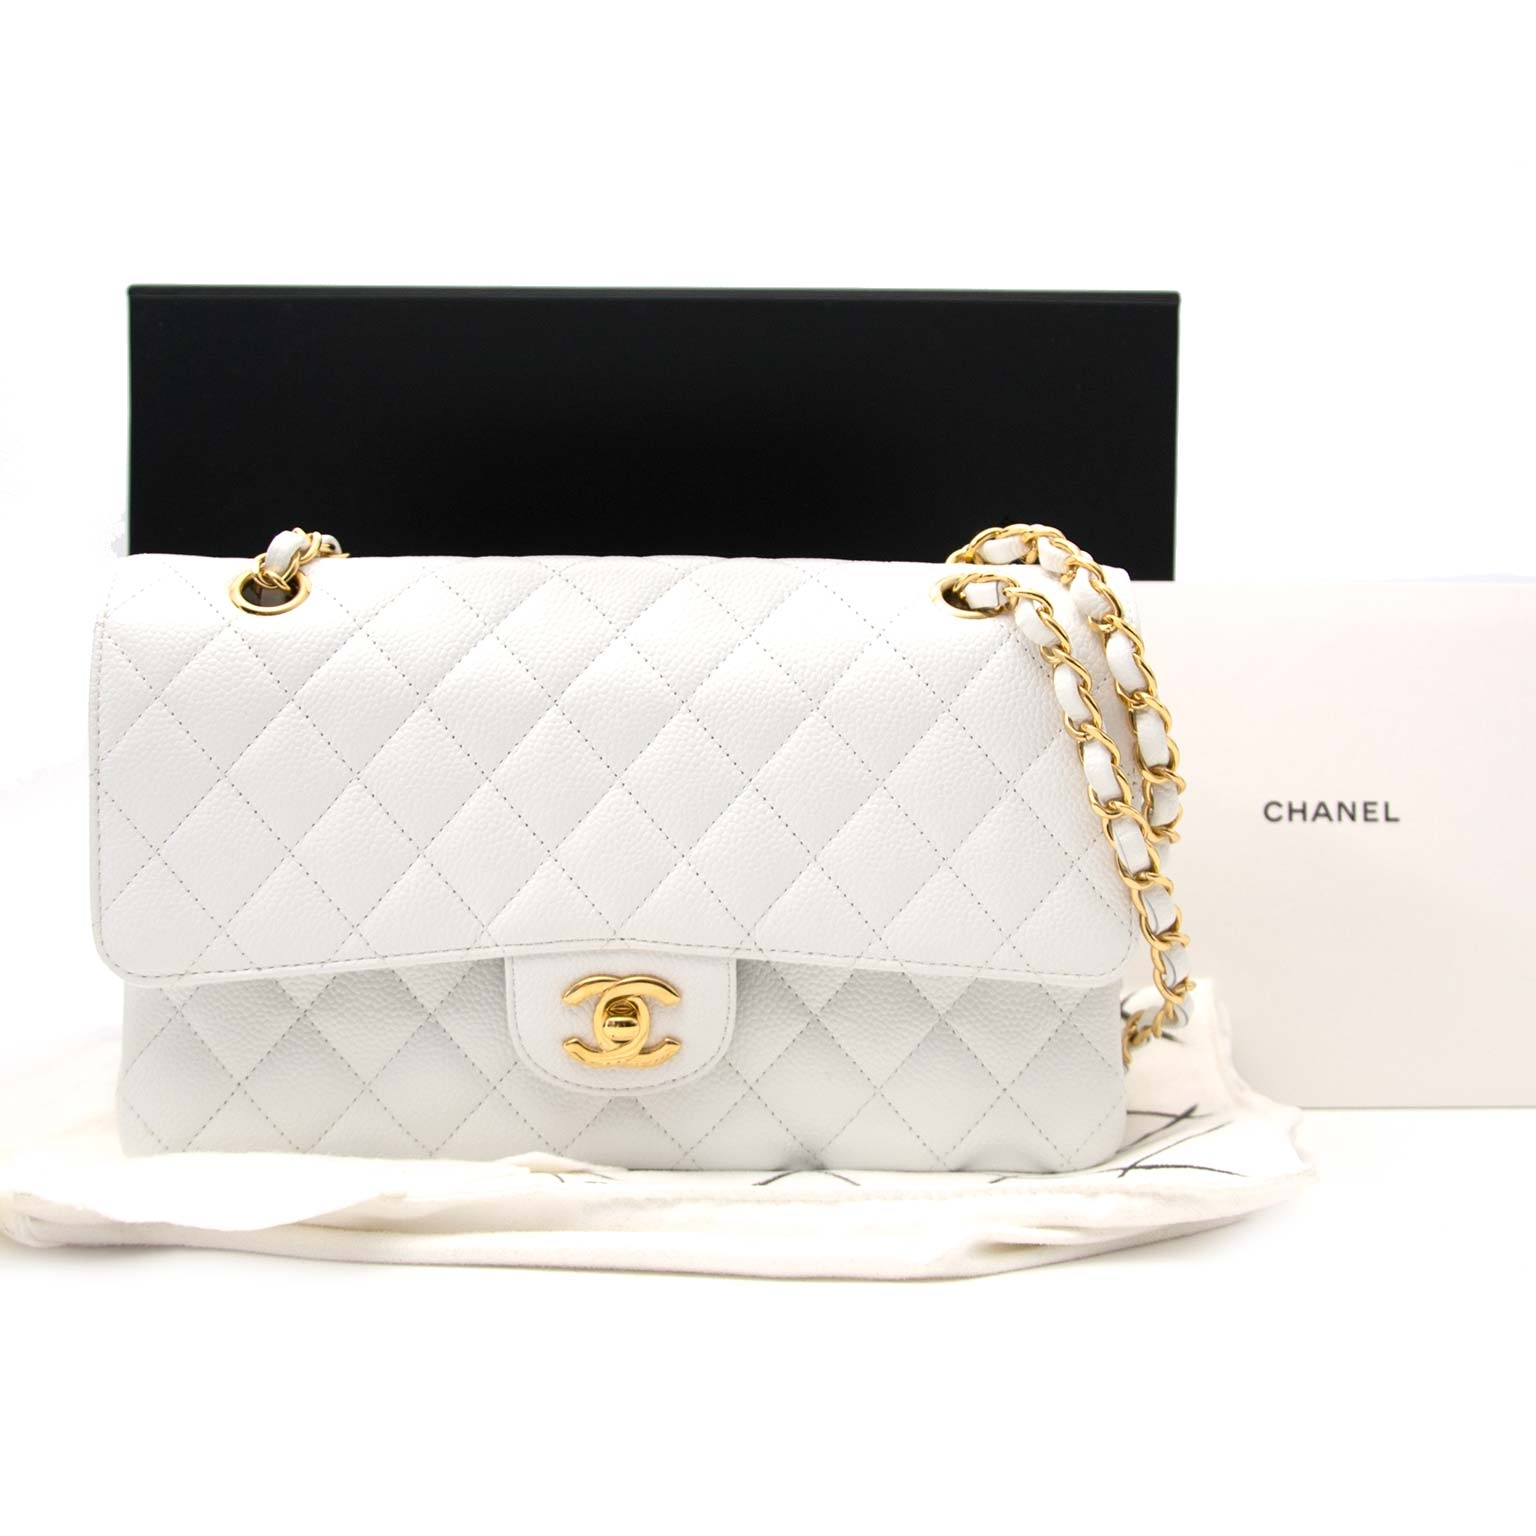 acheter en ligne seconde main Chanel White Caviar Leather Double Flap Bag